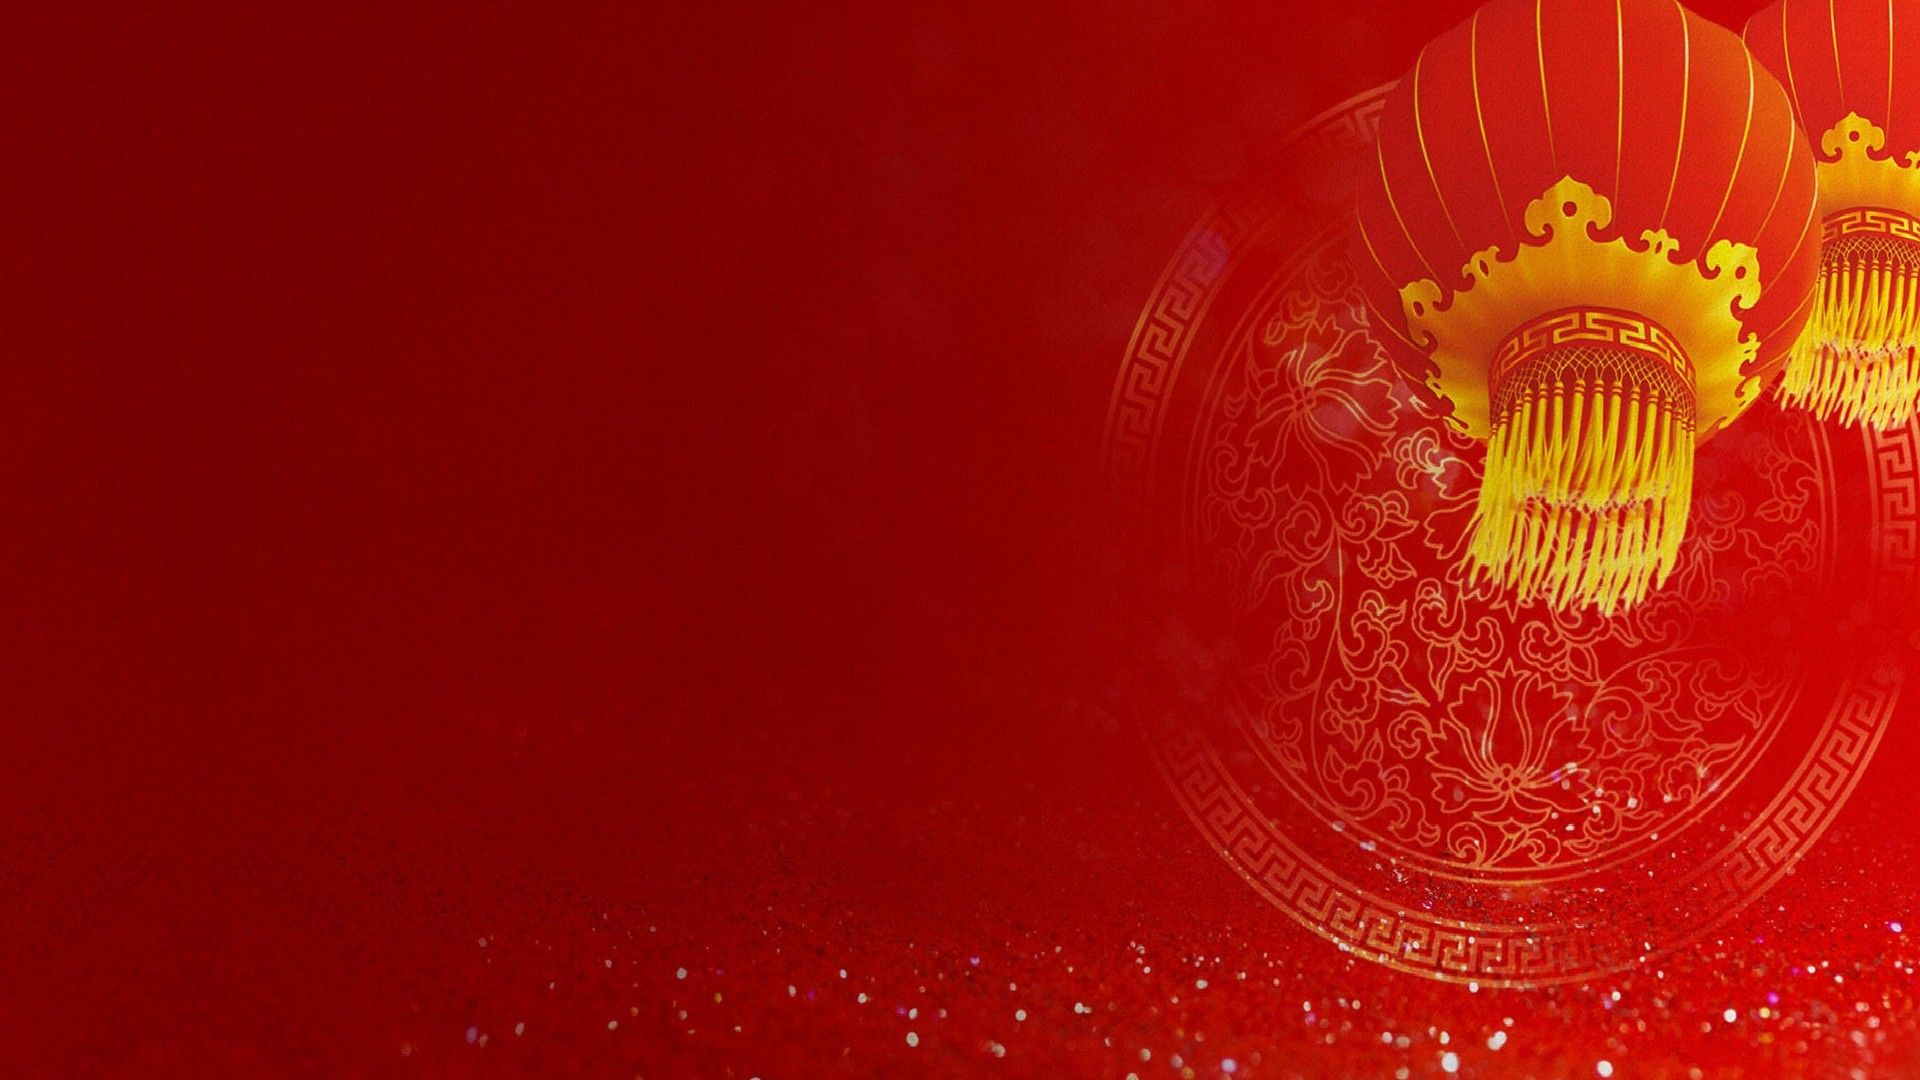 Chinese New Year Background For Free In Red And Gold Color